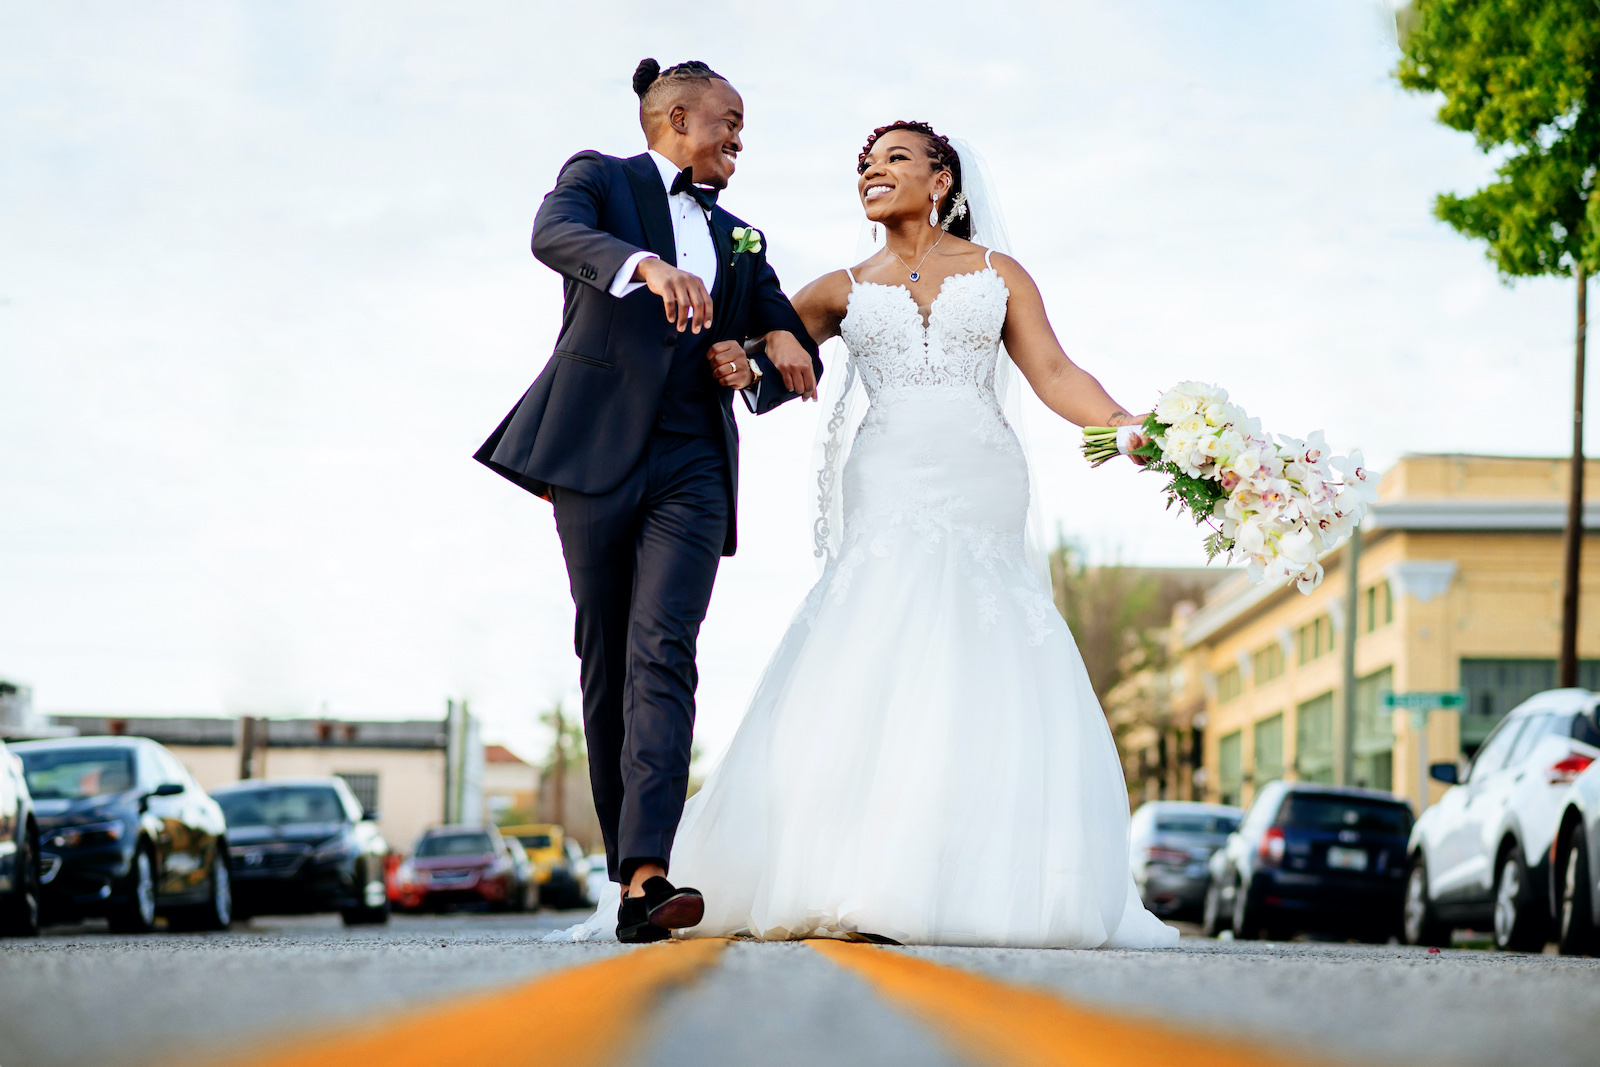 Outdoor Tampa Heights Bride and Groom Portrait   Ivory Spaghetti Strap Scoop Back Lace and Tulle Mermaid Martina Liana Wedding Dress Bridal Gown   Groom in Modern Navy Suit with Black Satin Lapel and Bow Tie   White Arm Sheaf Wedding Bride Bouquet with Hydrangea and Orchids